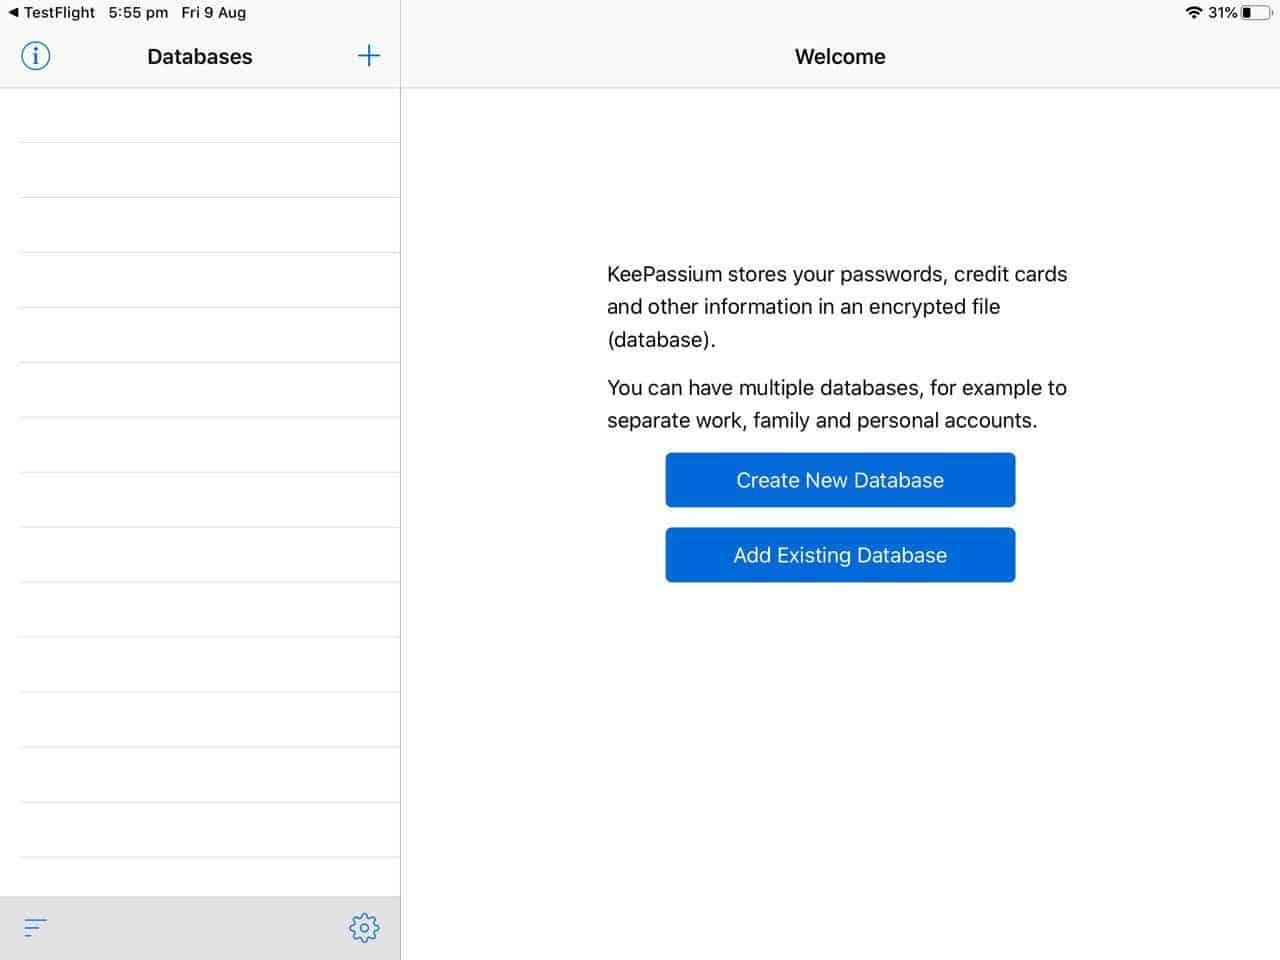 KeePassium is an open-source KeePass client for iOS